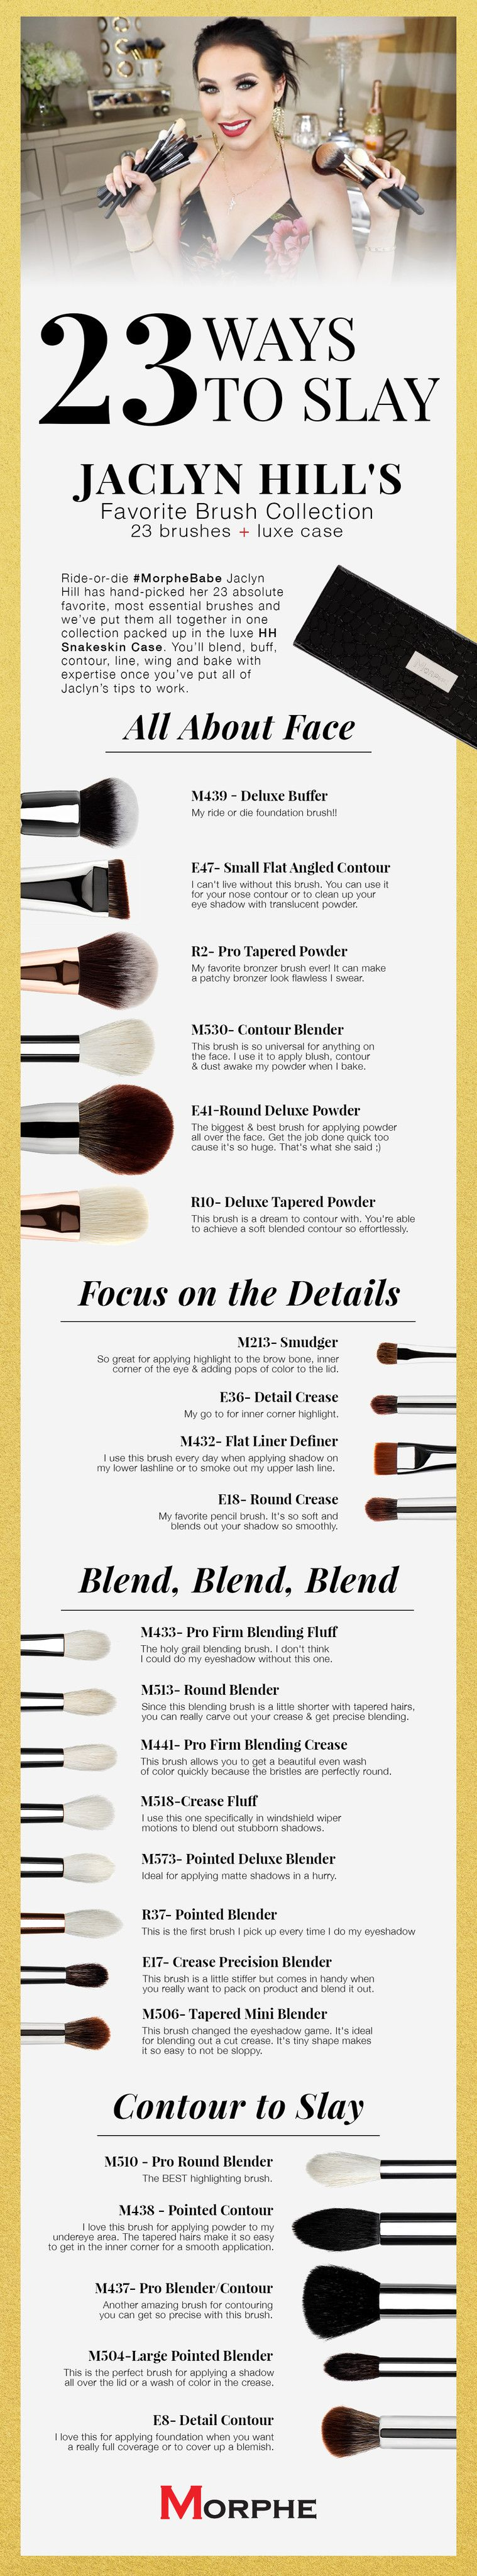 80 Brushes Ideas Makeup Brushes Brush Makeup